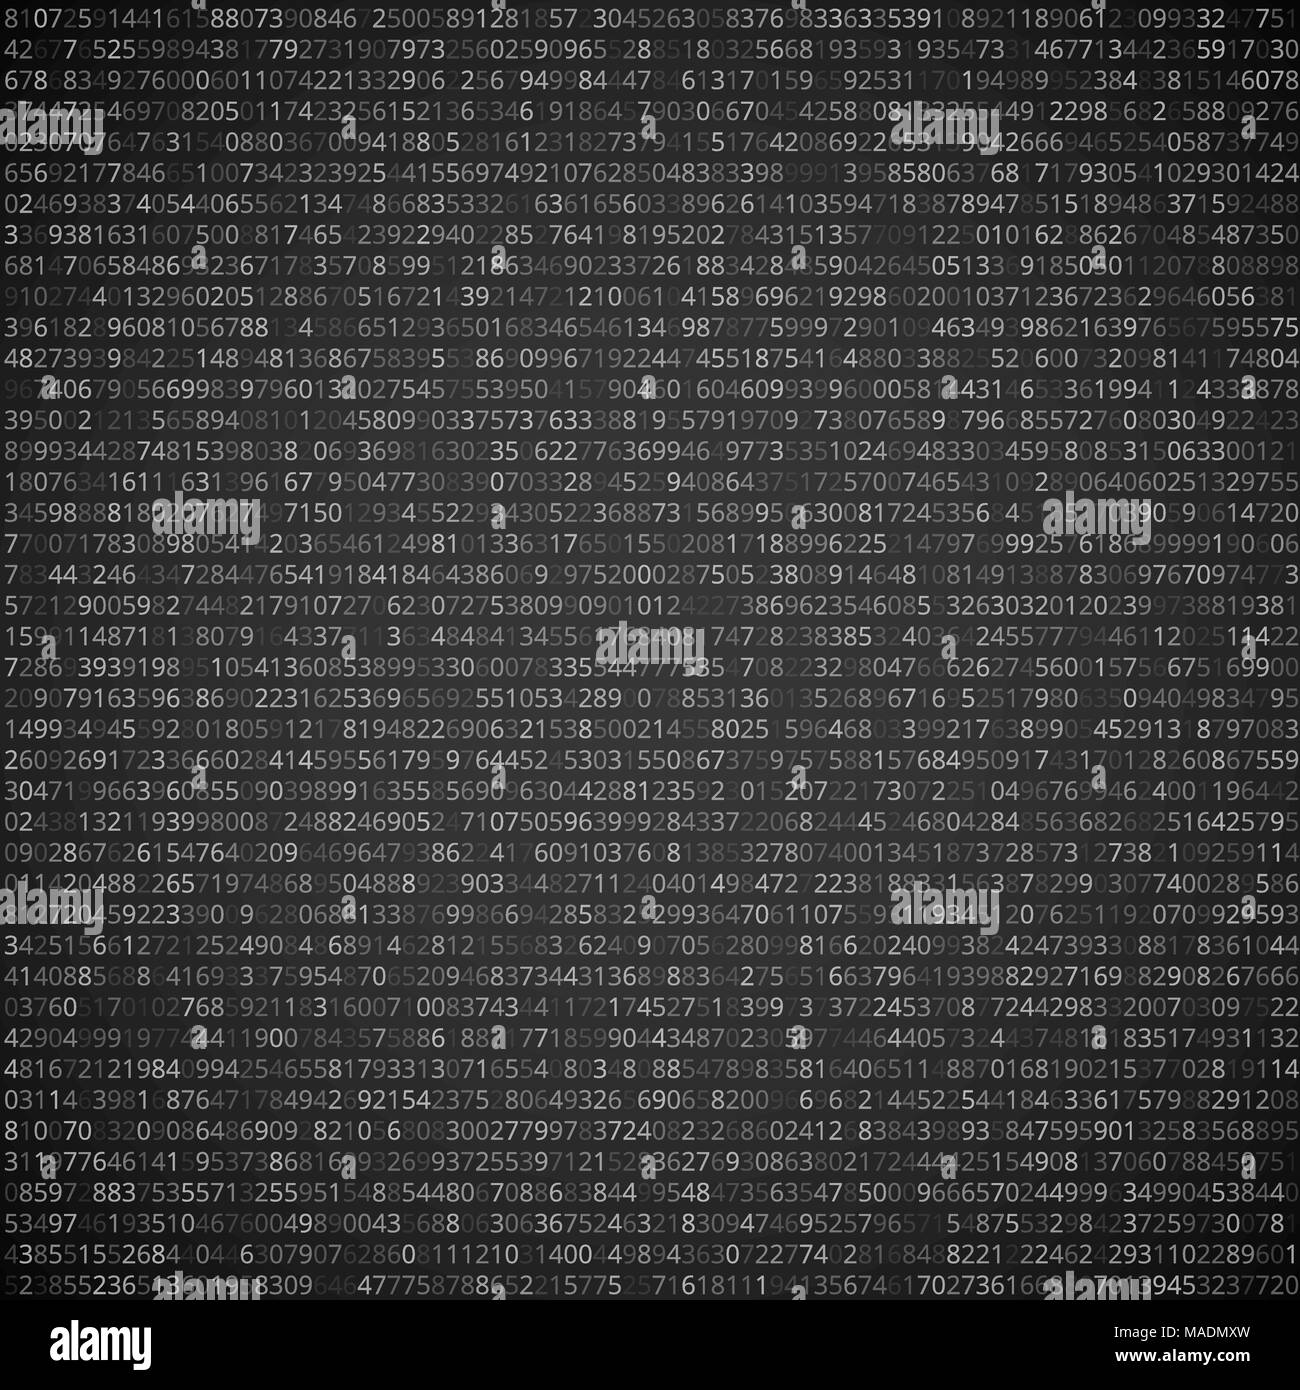 Binary Code Stock Vector Art Illustration Image 178552049 Abstact Background With Circuit Board And Images Codestock Enlarge